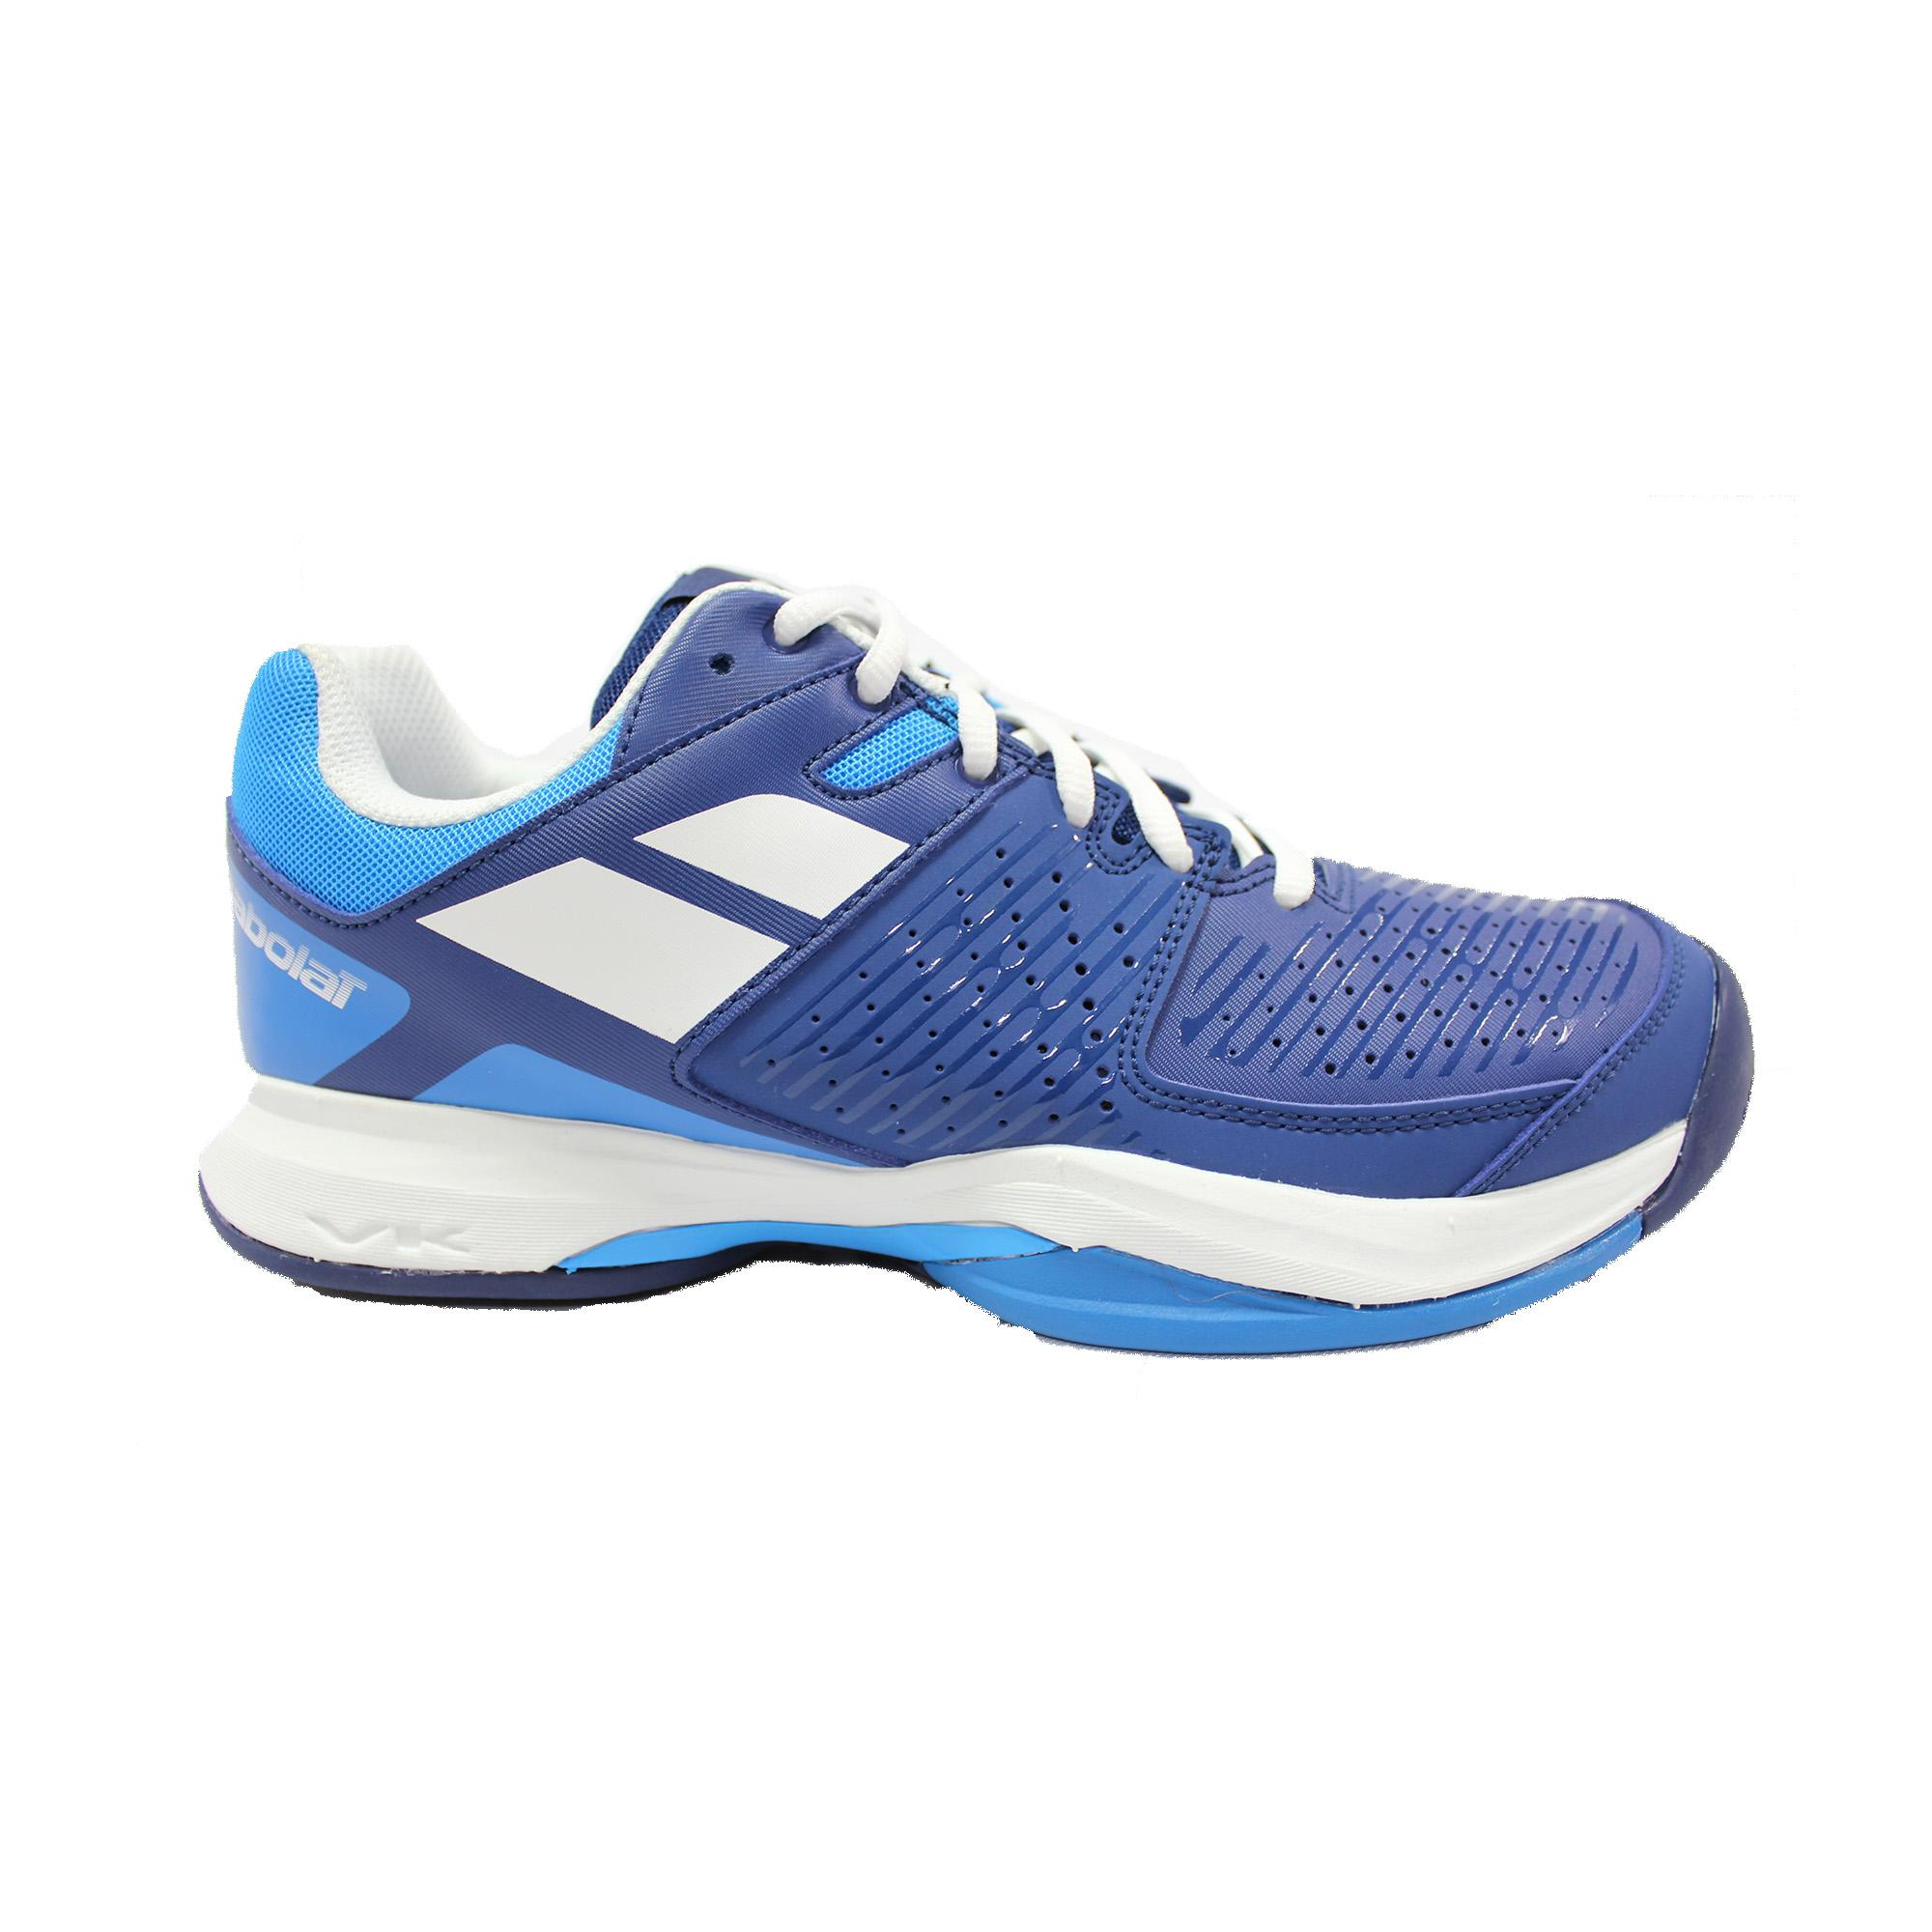 timeless design d4720 b2aba Babolat Pulsion CUD All Court Mens Tennis Shoes (Blue)